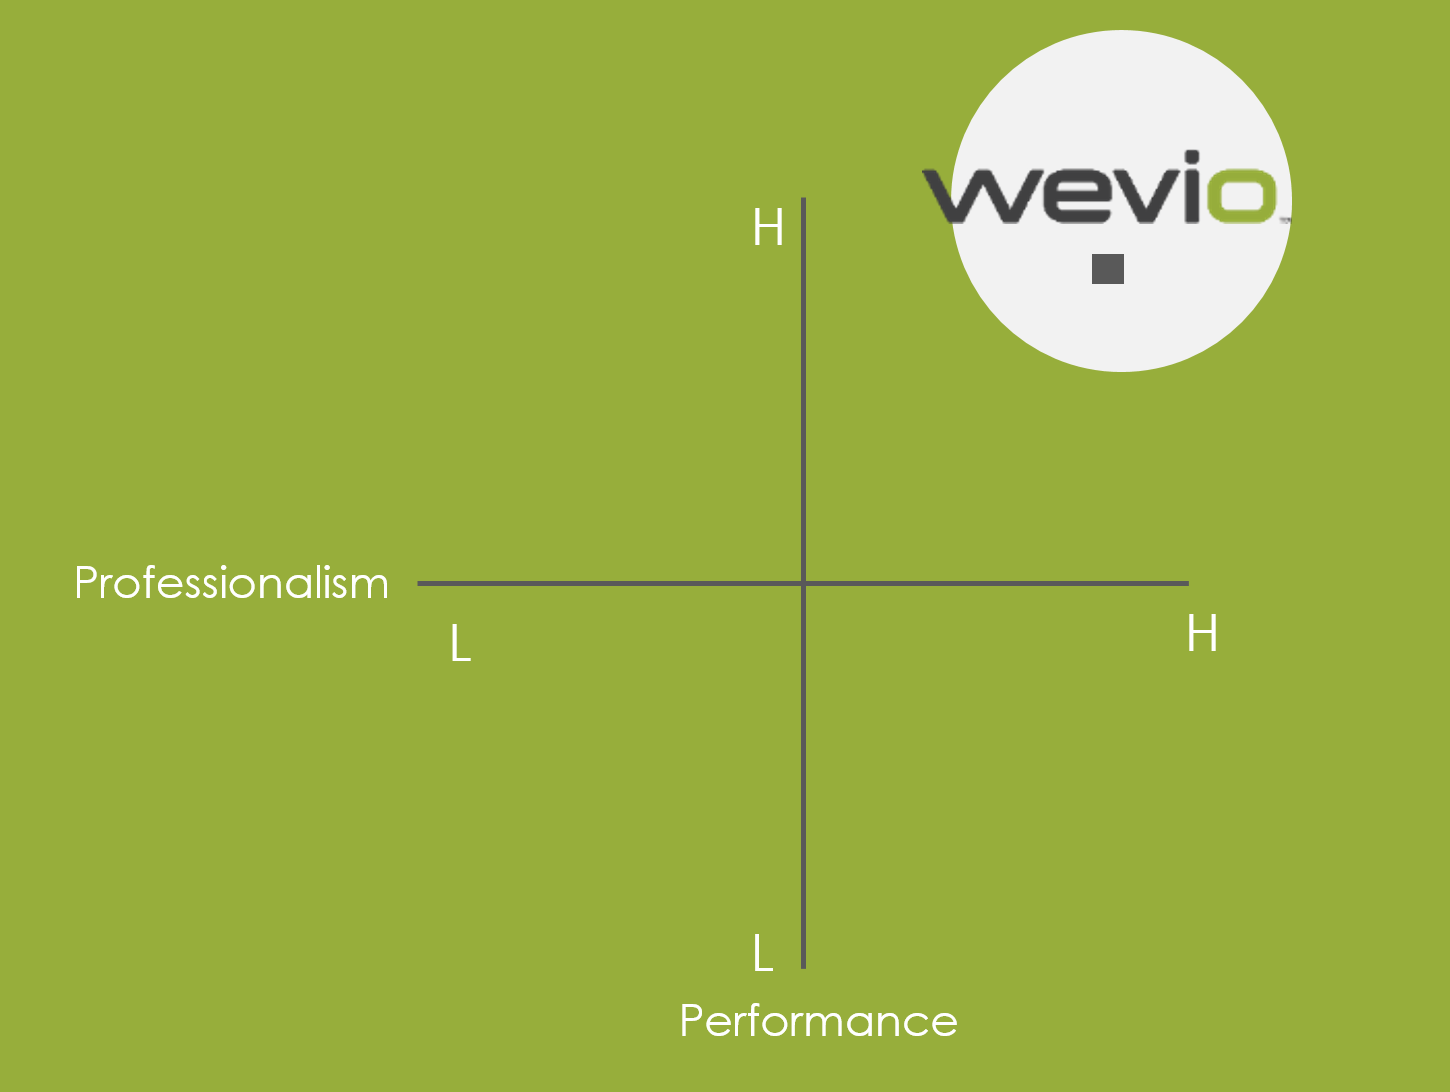 Wevio Global Business Development Company